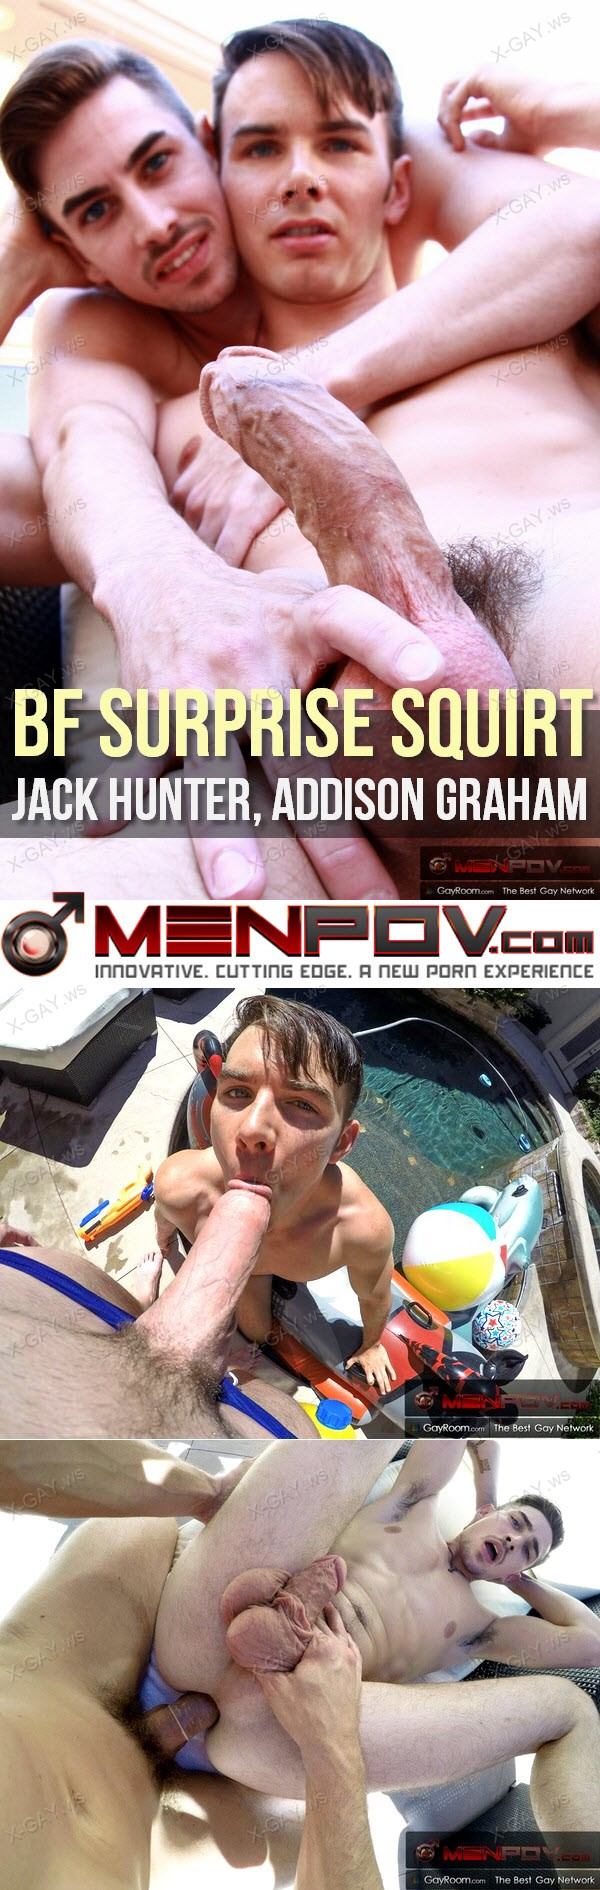 MenPOV: BF Surprise Squirt (Jack Hunter, Addison Graham)